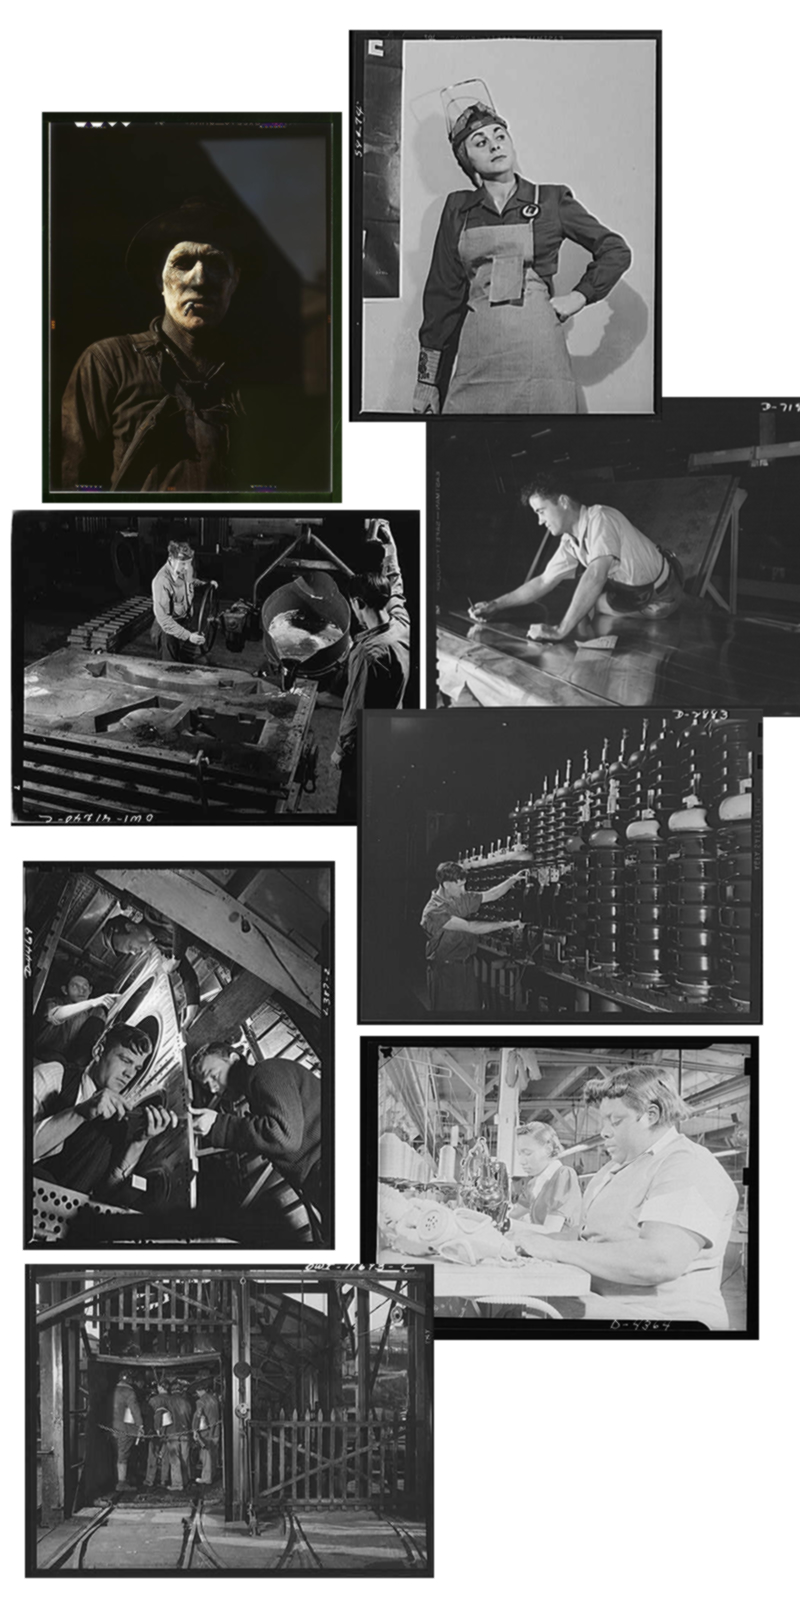 Collage of Eight Photographs of American Workers during World War II